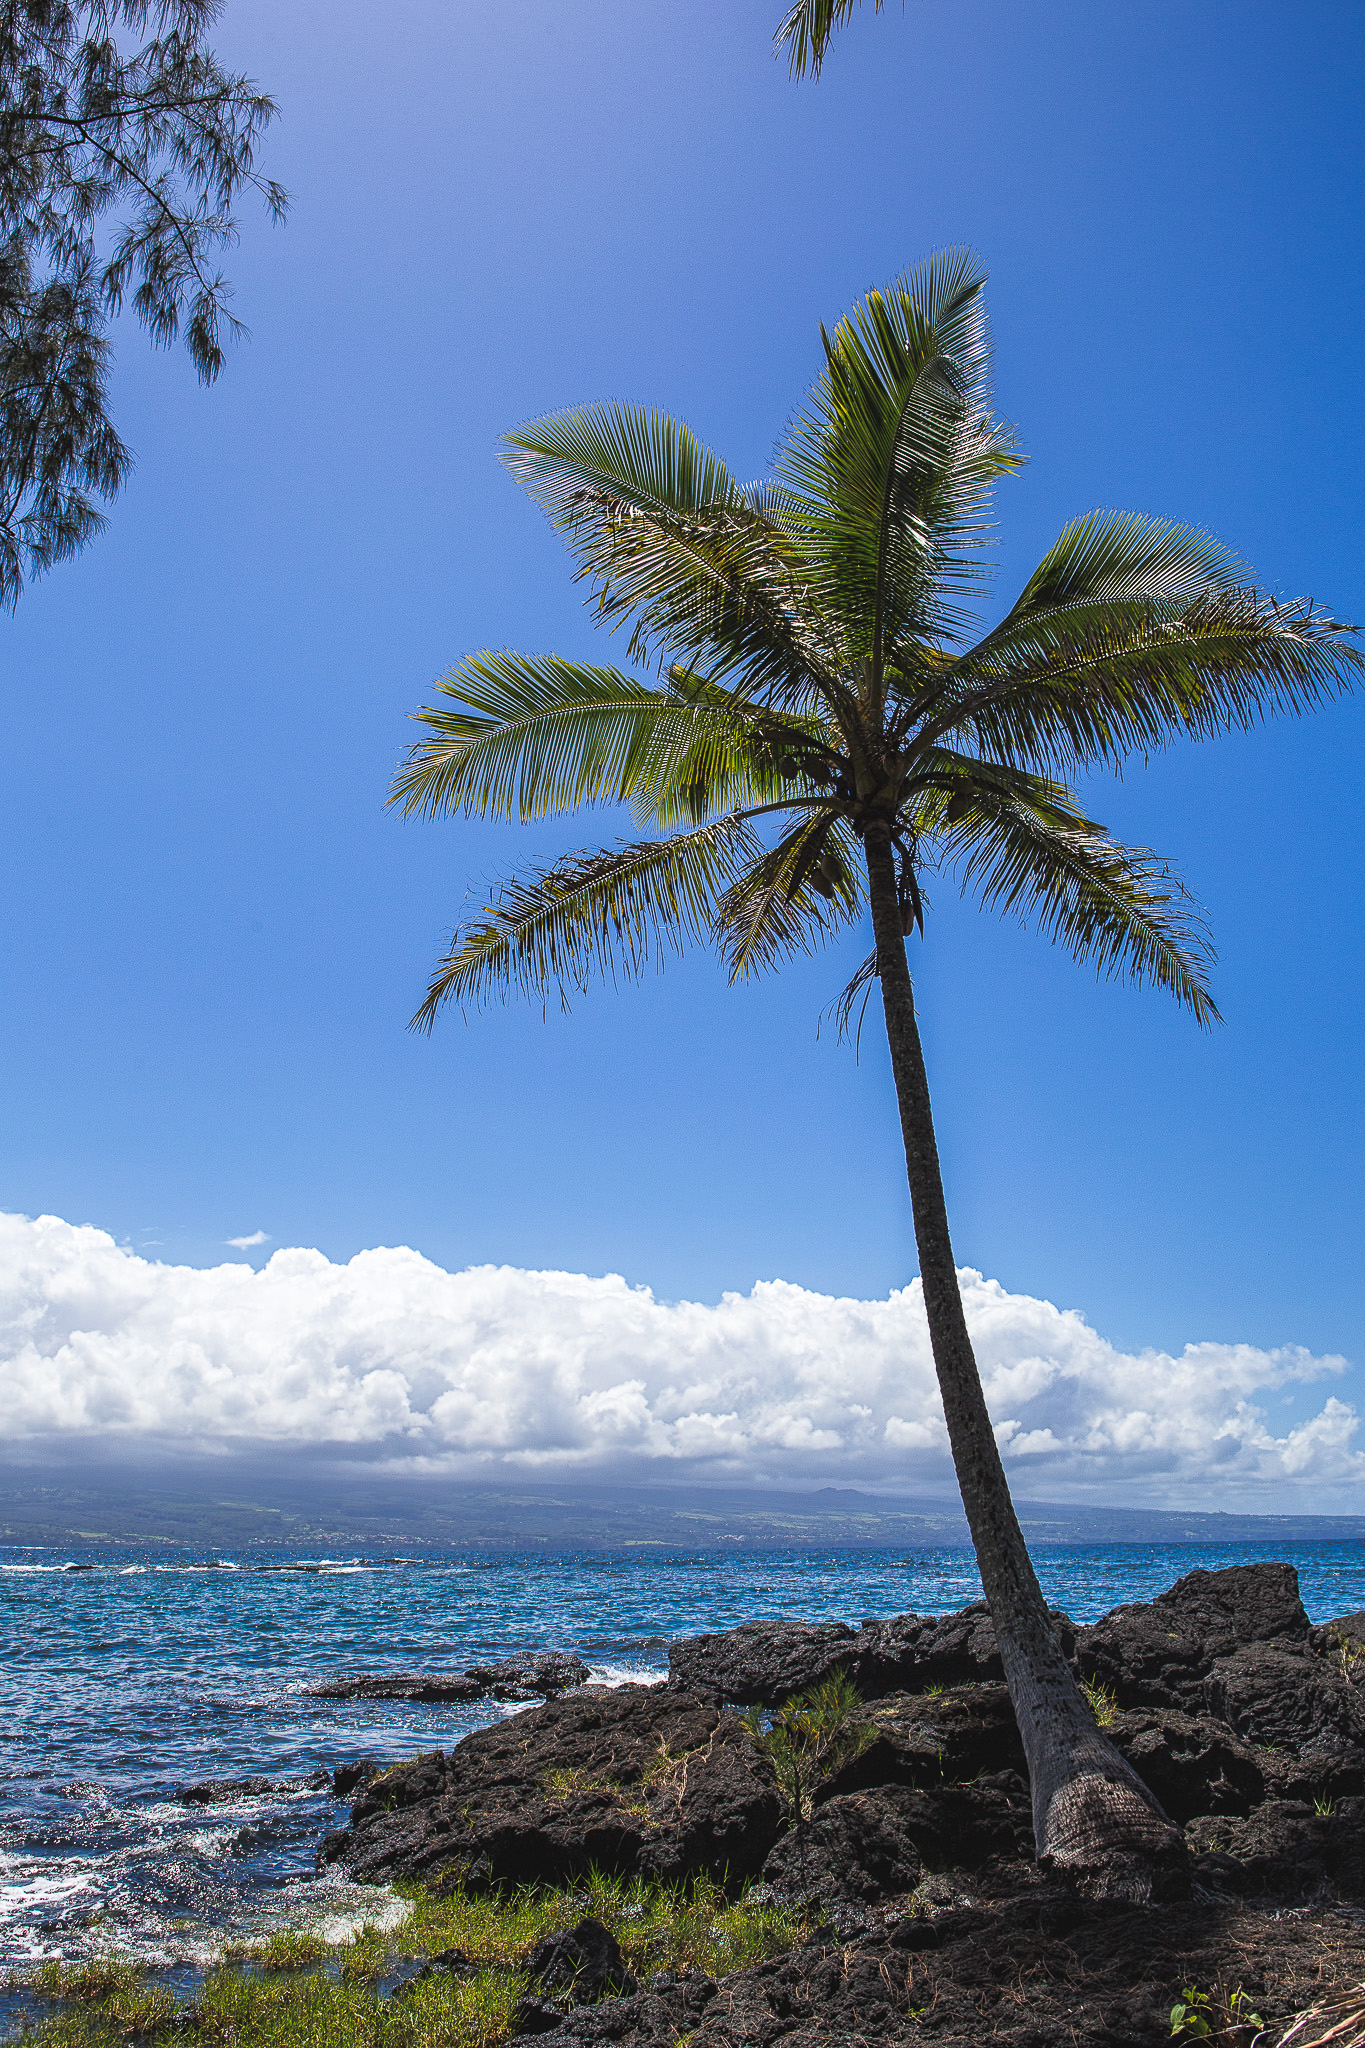 richardson ocean park palm tree big island hawaii